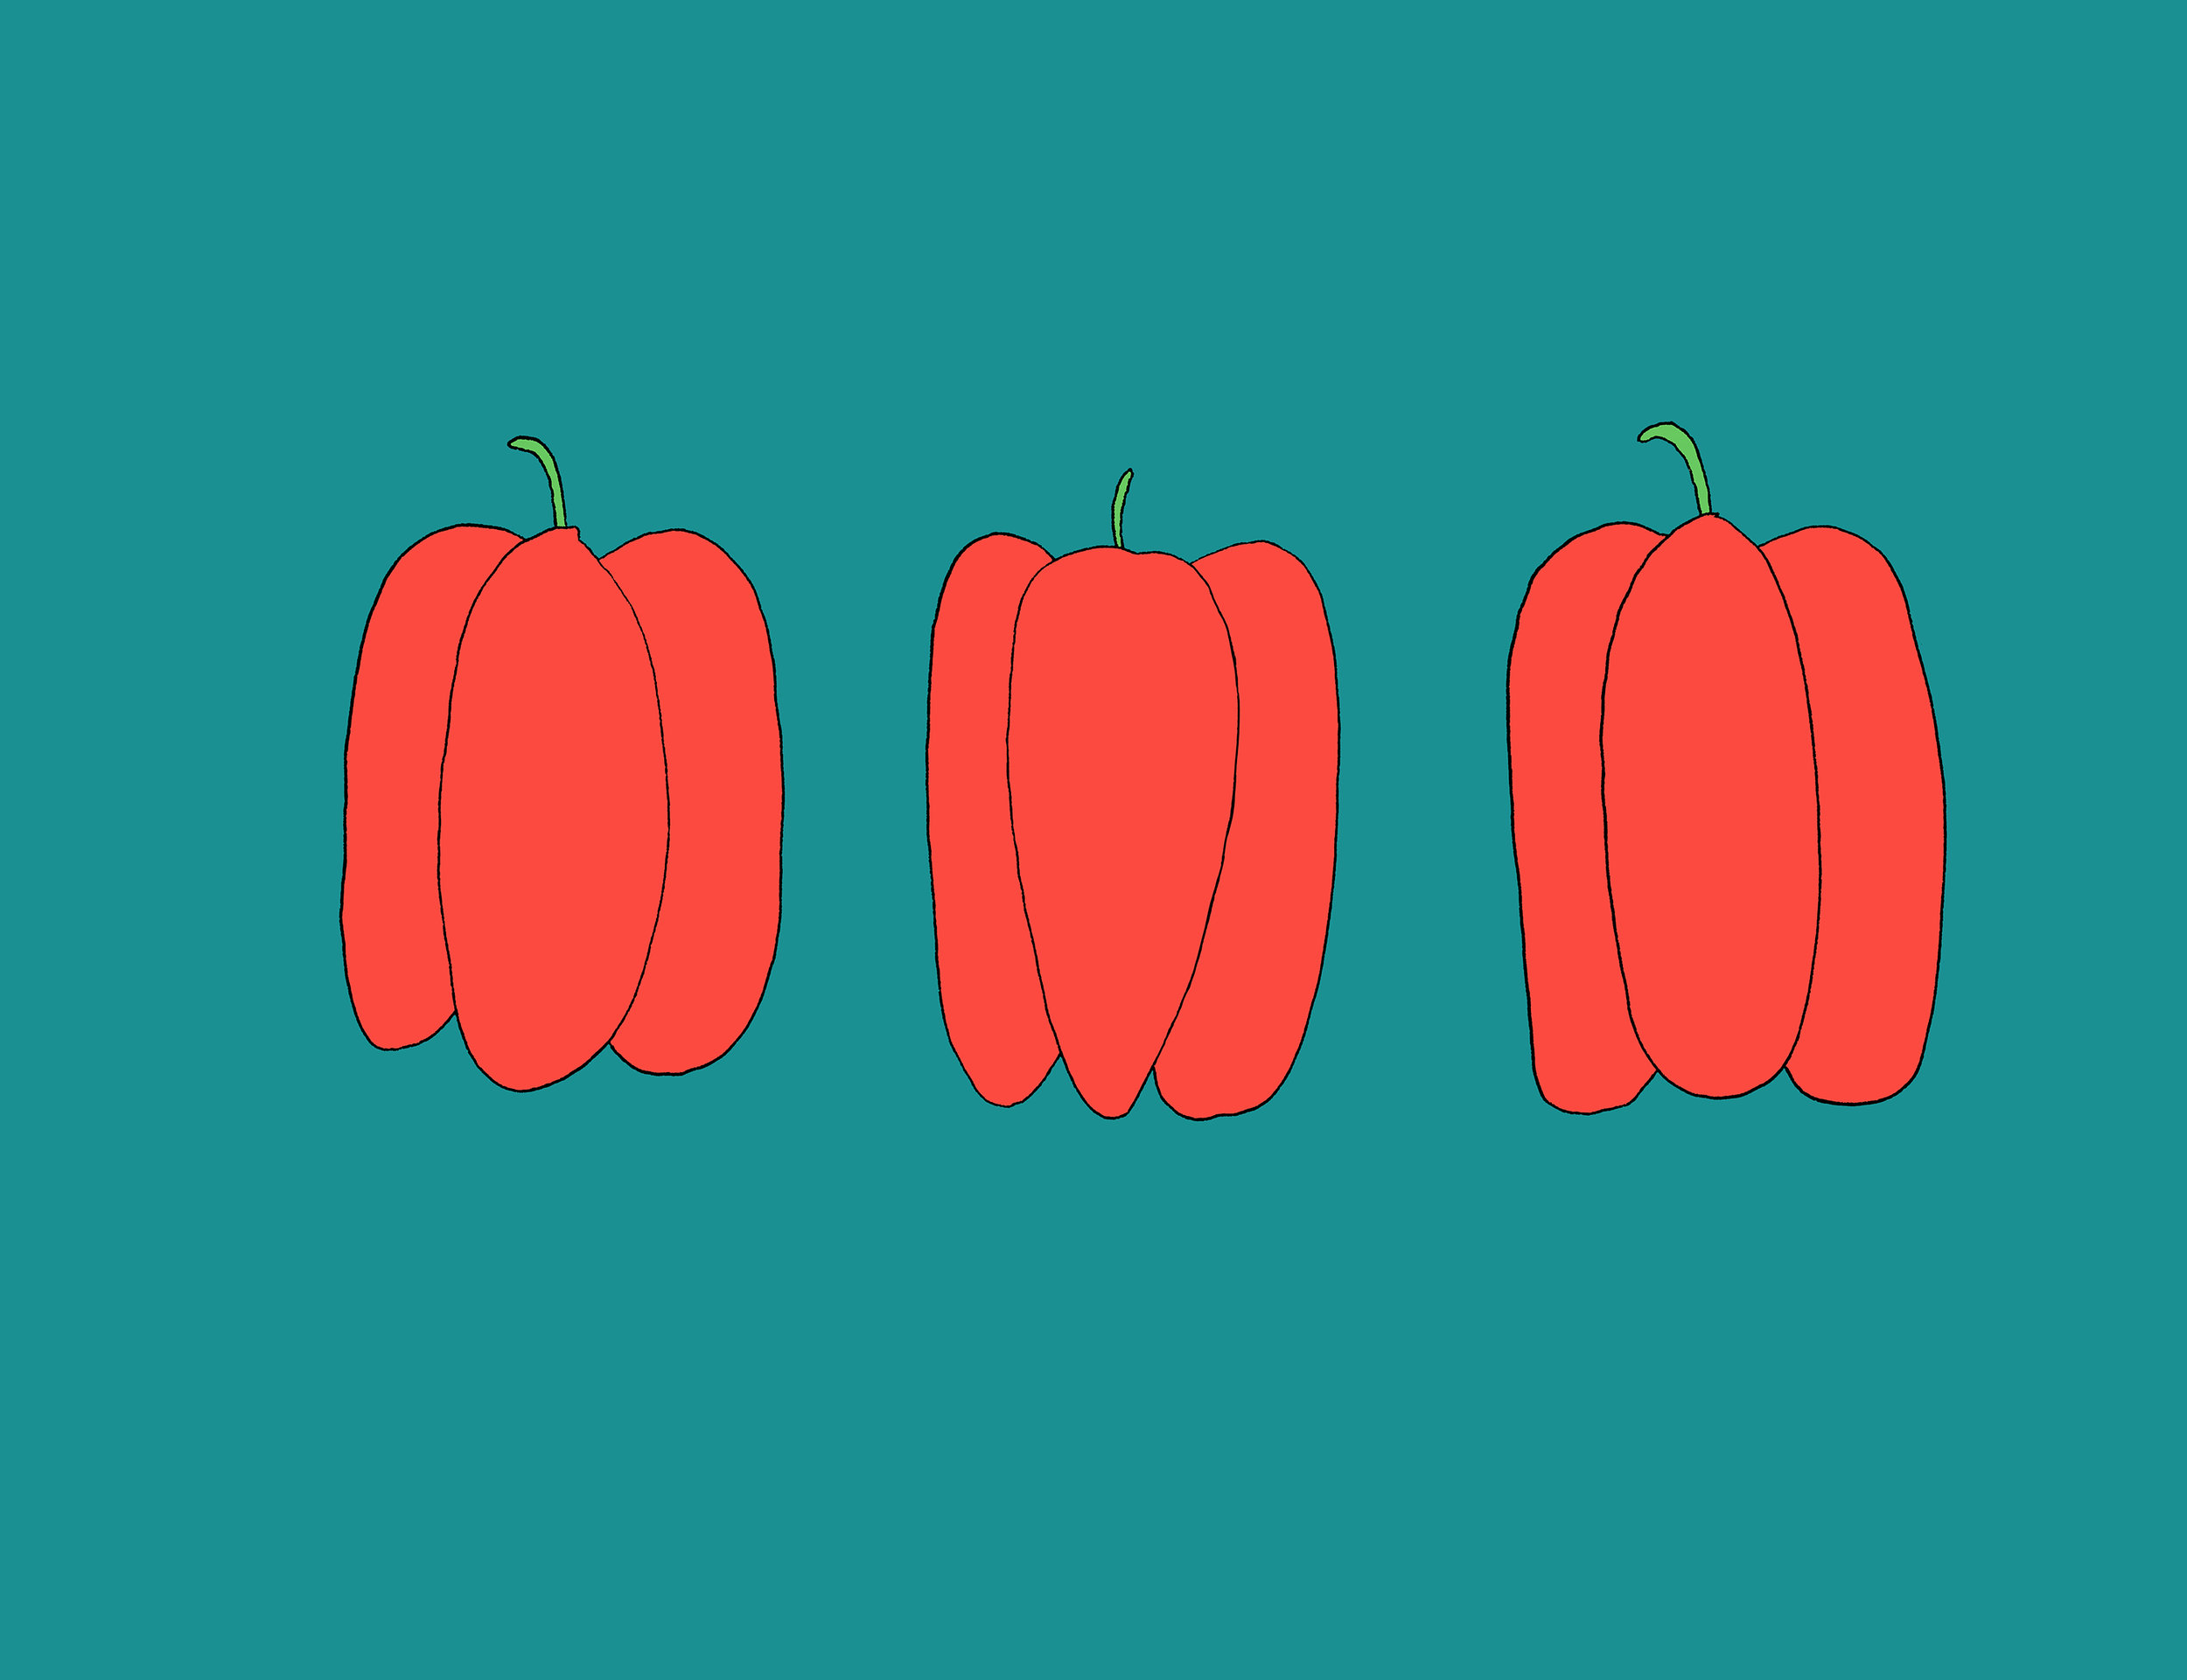 Red Peppers Illustration by Emma Freeman Designs